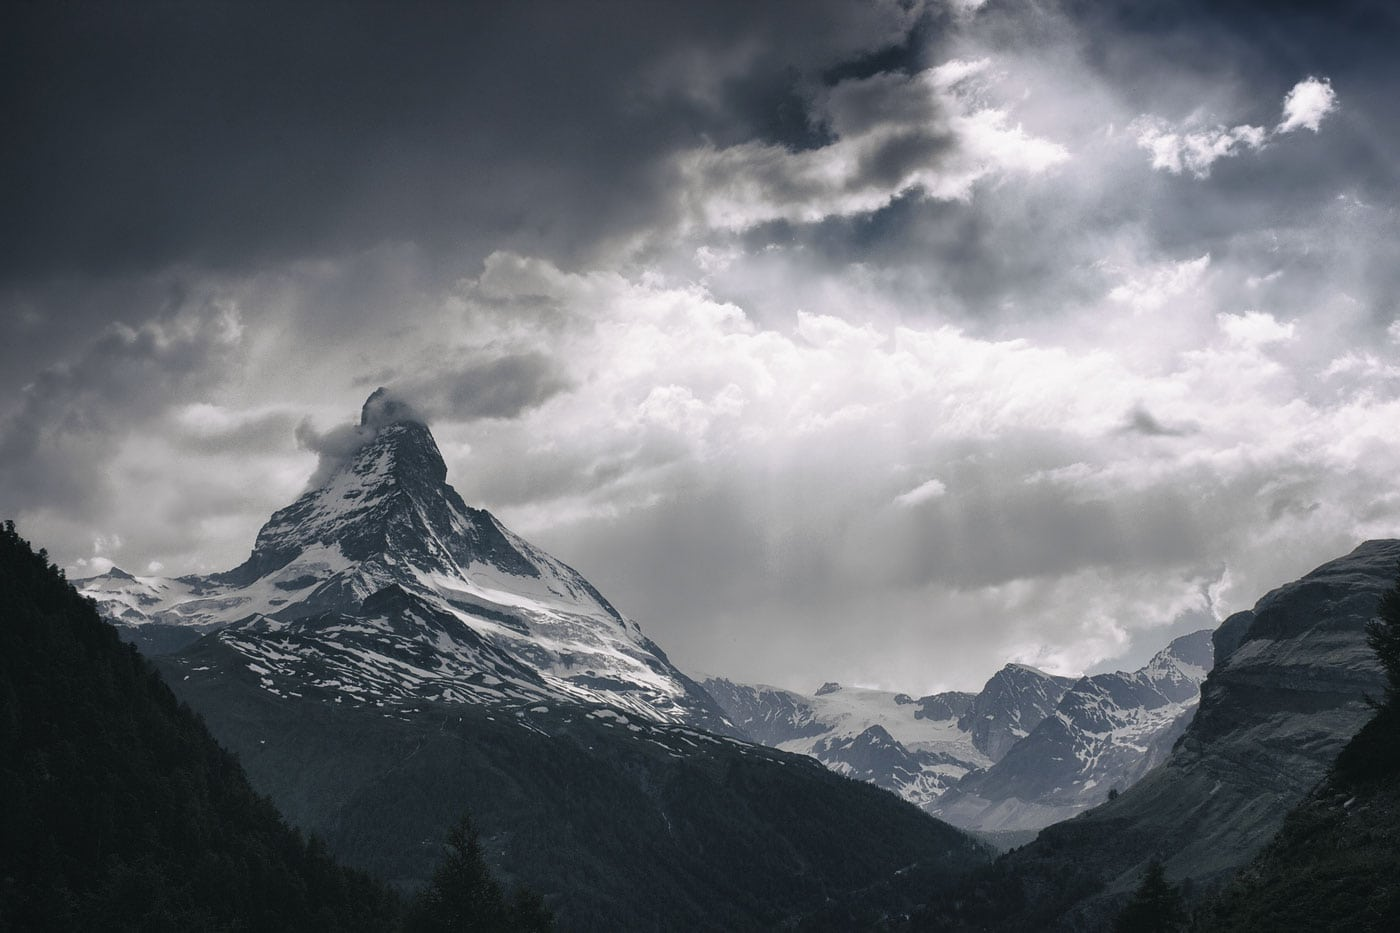 Mental health and adventure: A stormy sky and sunburst surrounding the mountains and peak of the Matterhorn